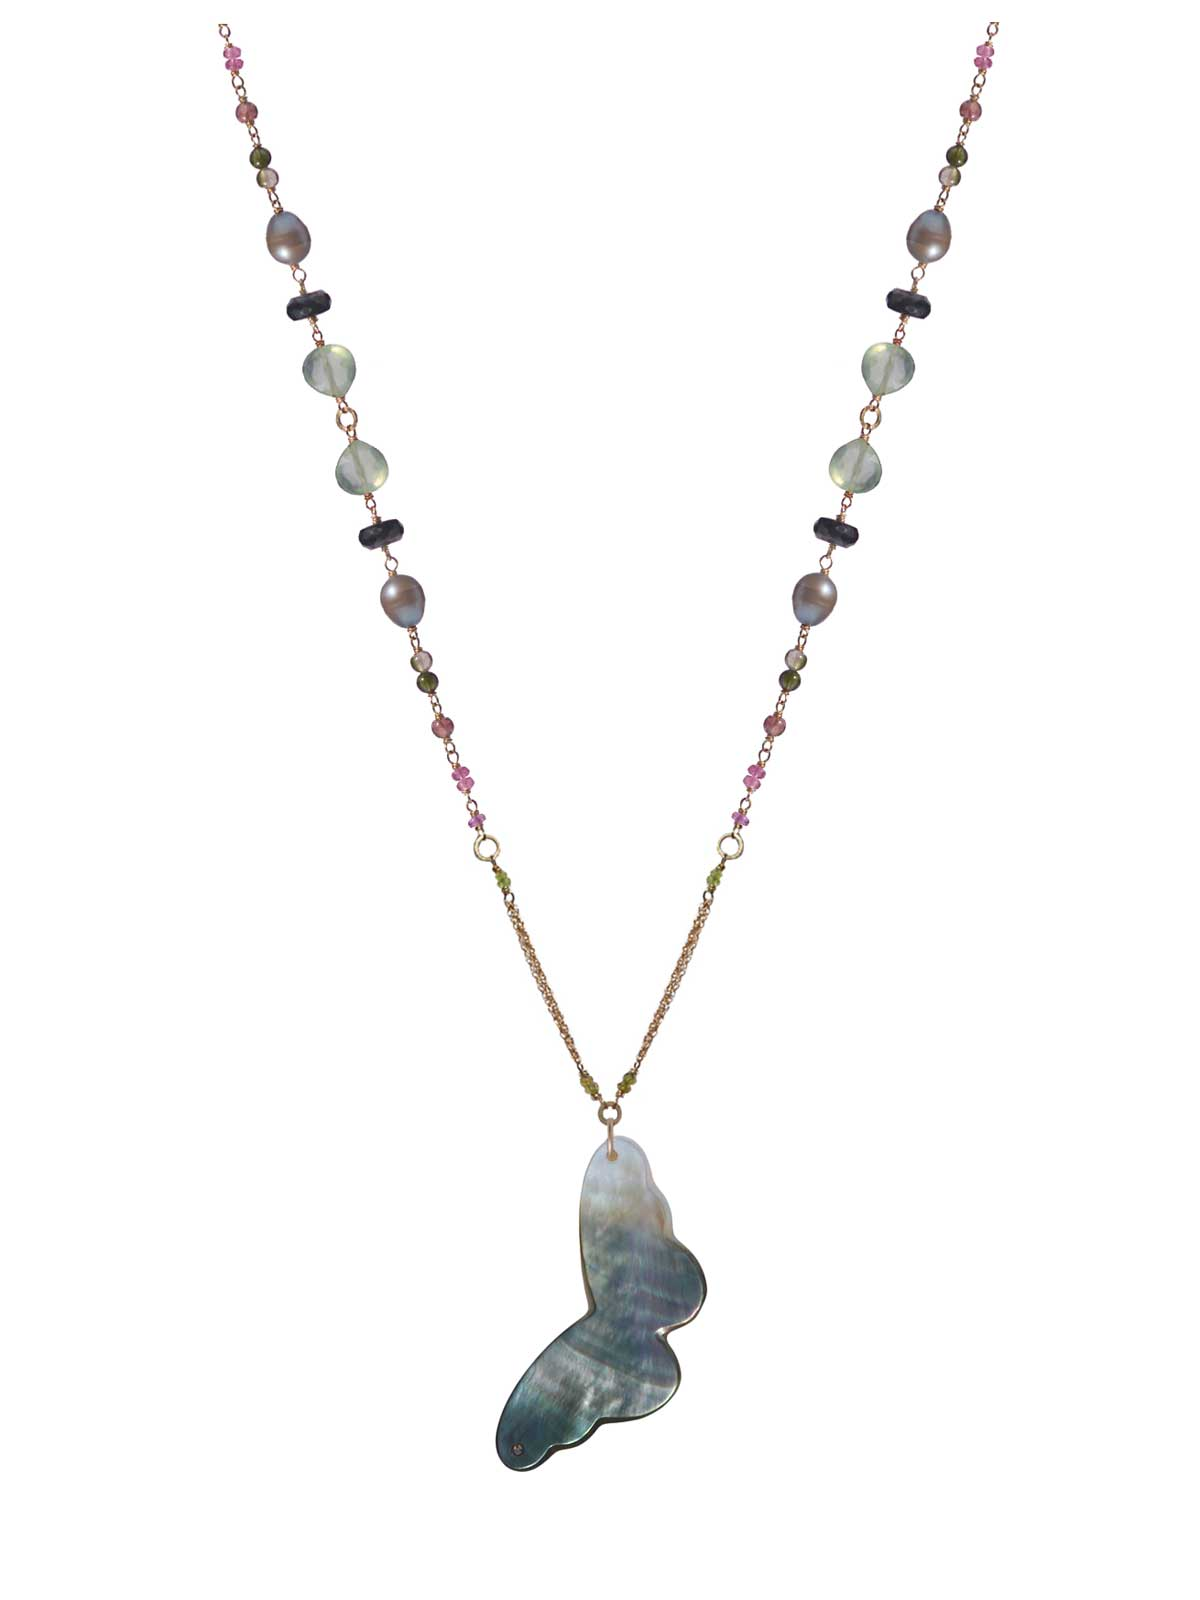 Long Necklace in 14K Gold-filled Prehnite Tourmaline Black Spinel gray Freshwater Pearl